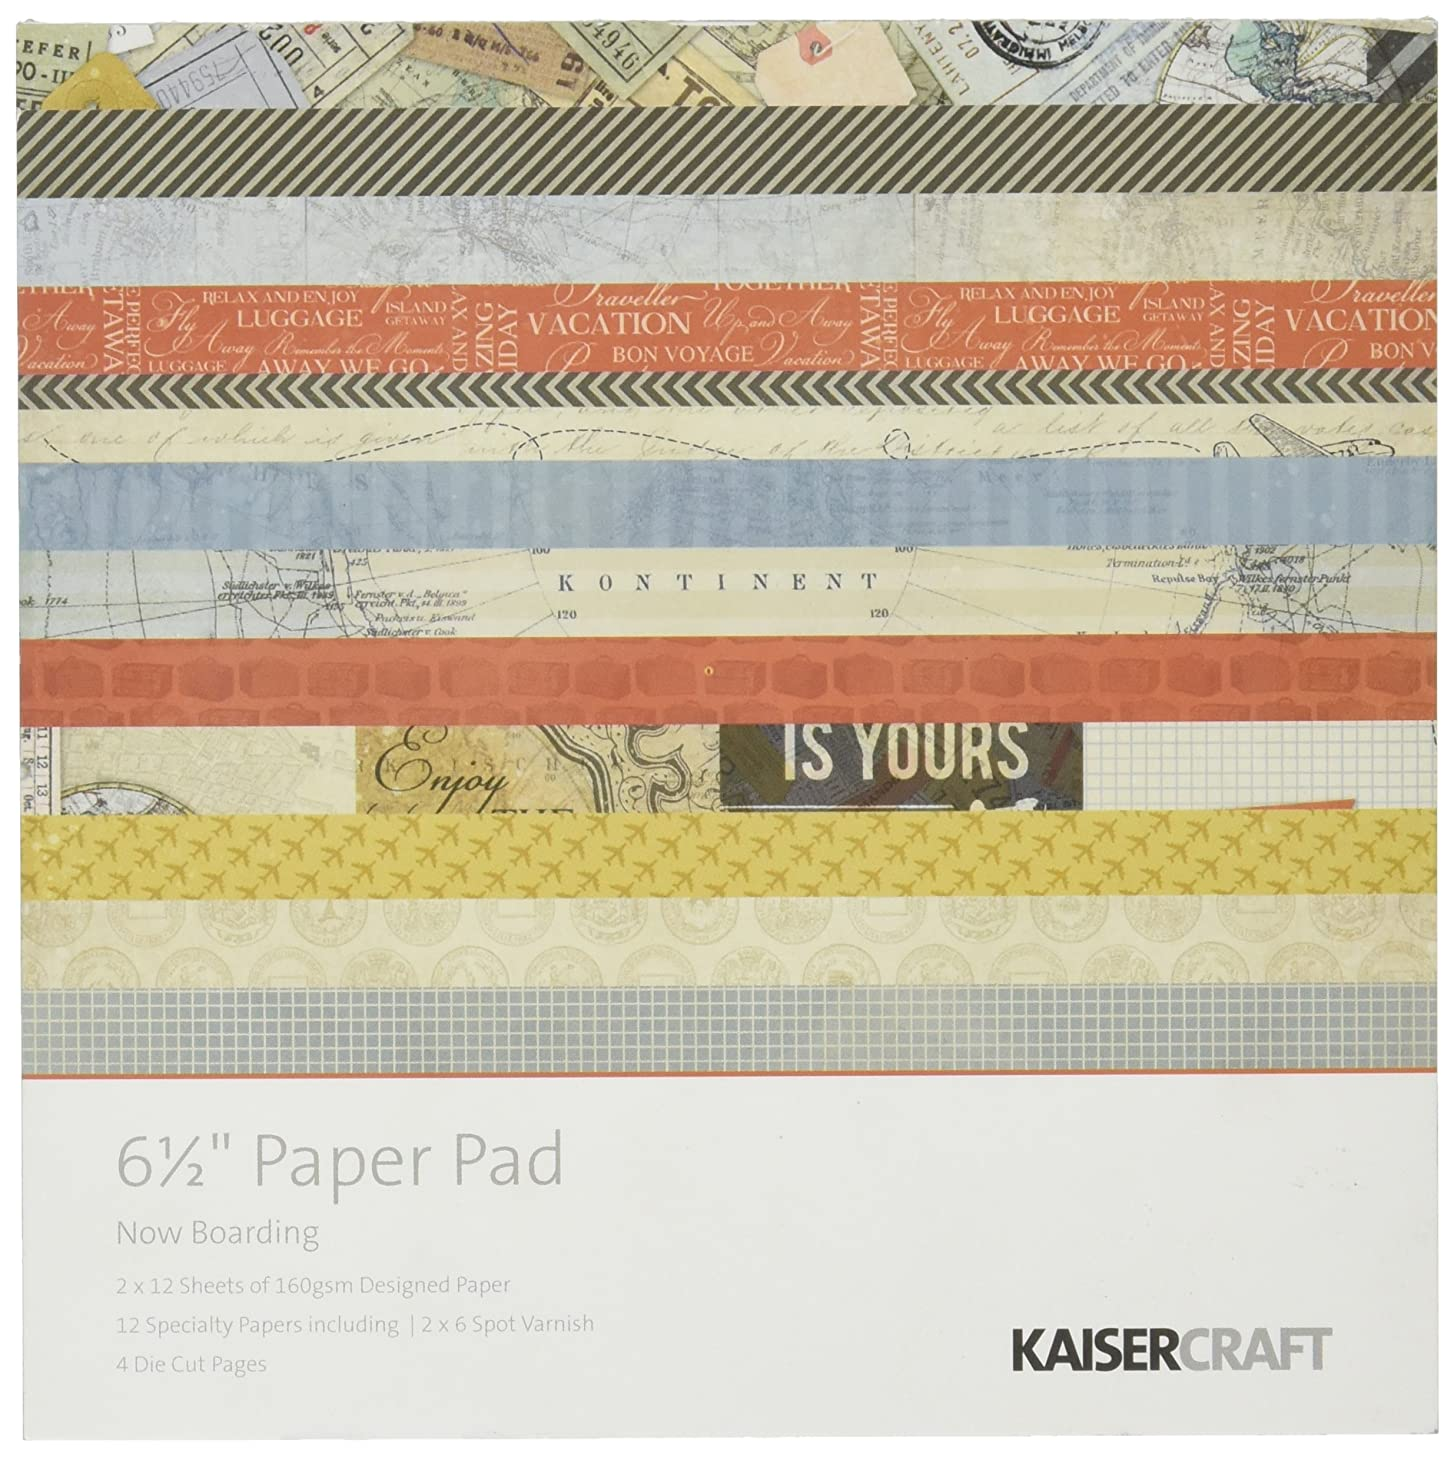 Kaisercraft PP929 Paper Pad, 6.5 by 6.5-Inch, Now Boarding, 40-Pack